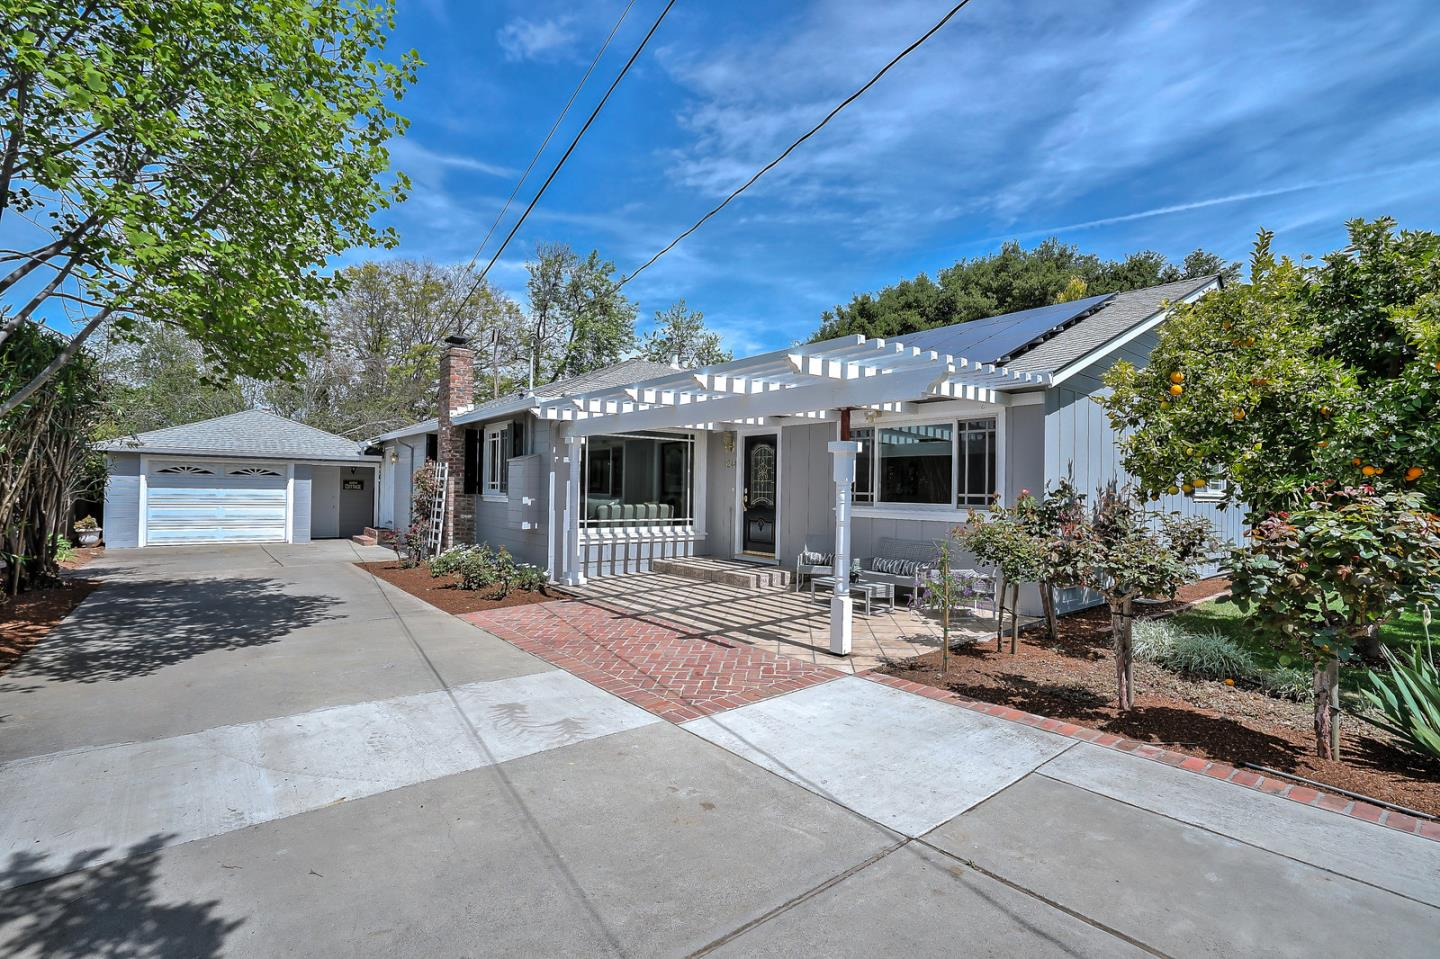 Single Family Home for Sale at 1244 Rose Avenue 1244 Rose Avenue Mountain View, California 94040 United States